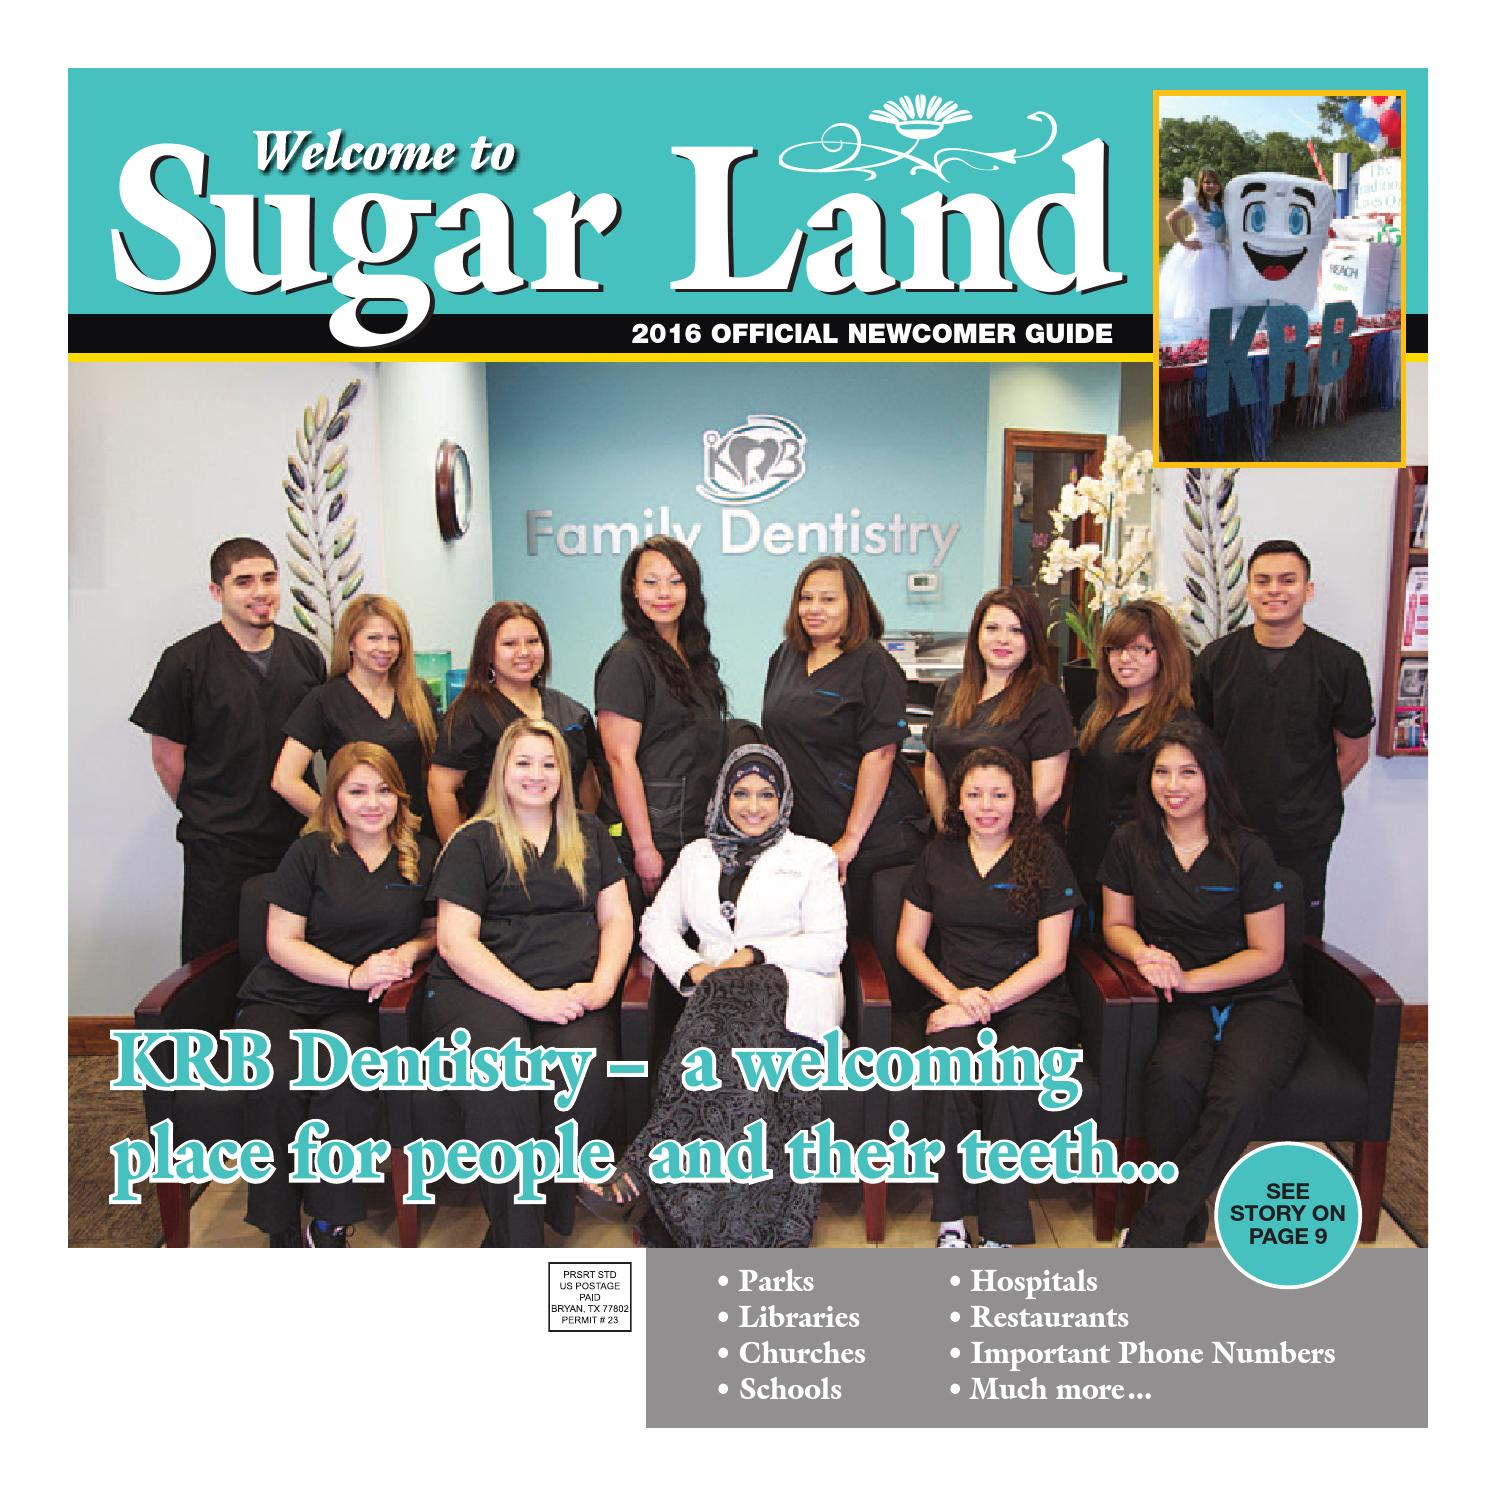 issue sugar land newcomers guide by sugar land newcomer 2016 issue sugar land newcomers guide by sugar land newcomer guide issuu